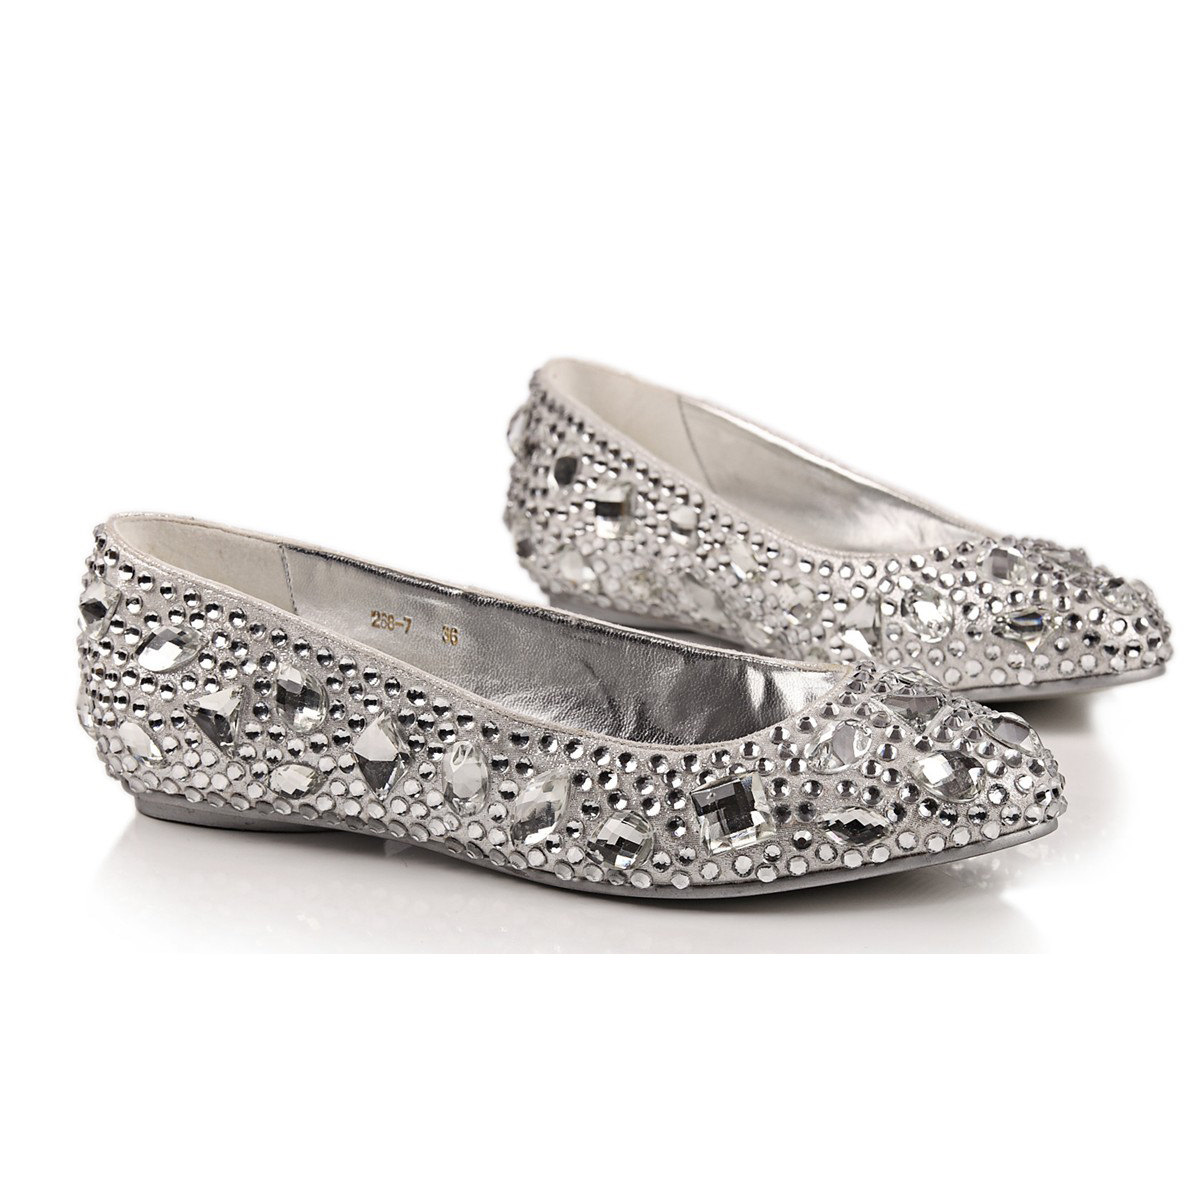 comfortable dressy shoes for wedding photo - 1